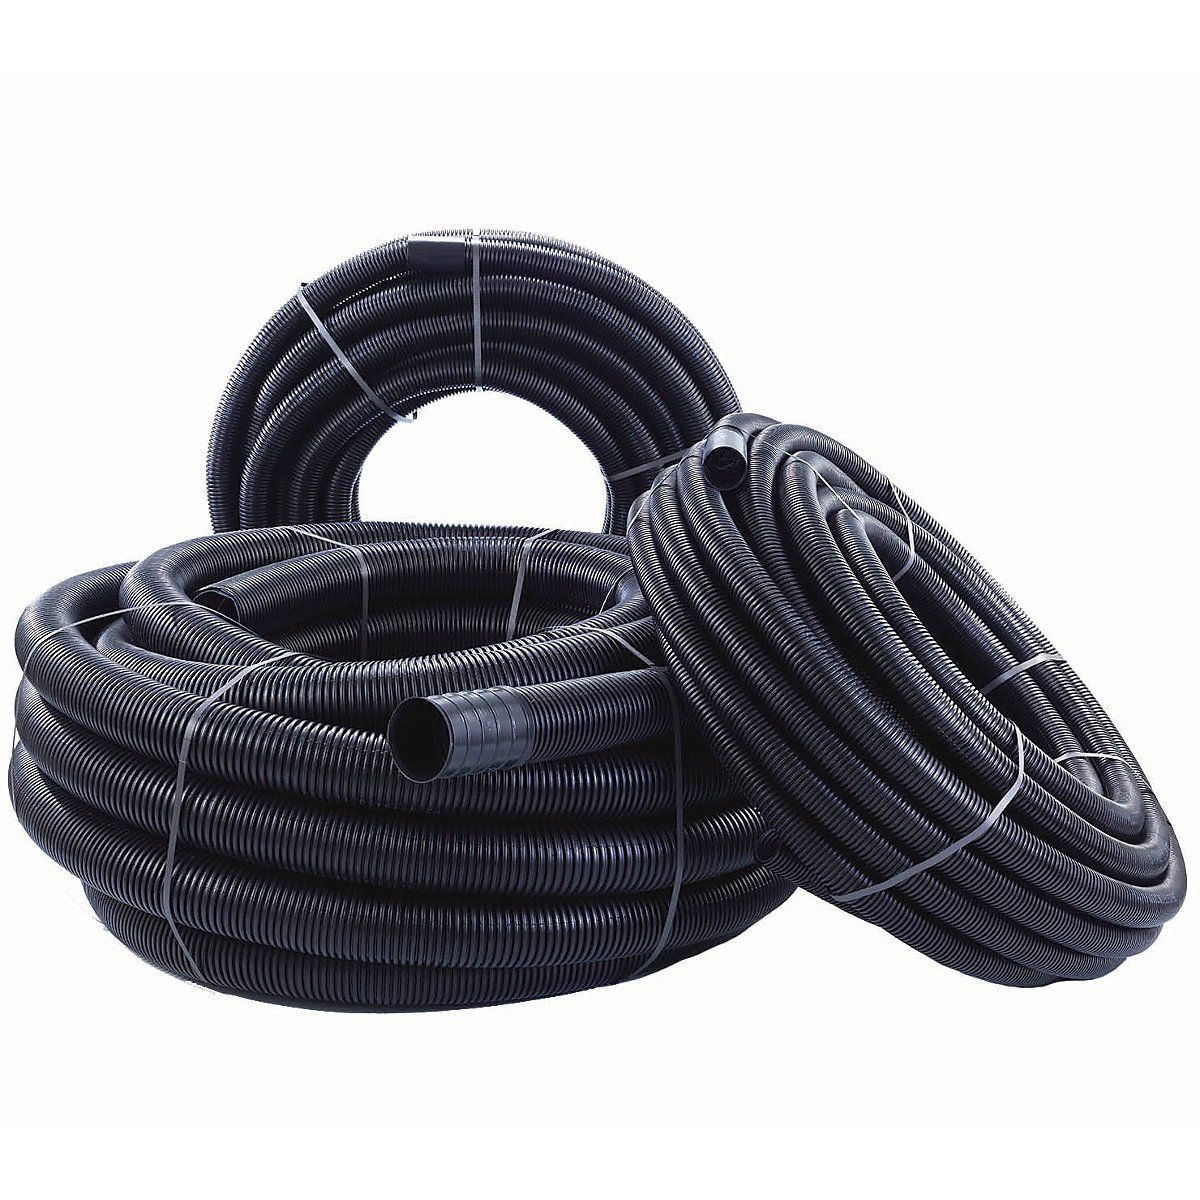 Twinwall Black Cable Protection Ducting 40 63 50m Coil Travis Perkins Wiring Duct For Electric Wire Tube Flexible Conduit